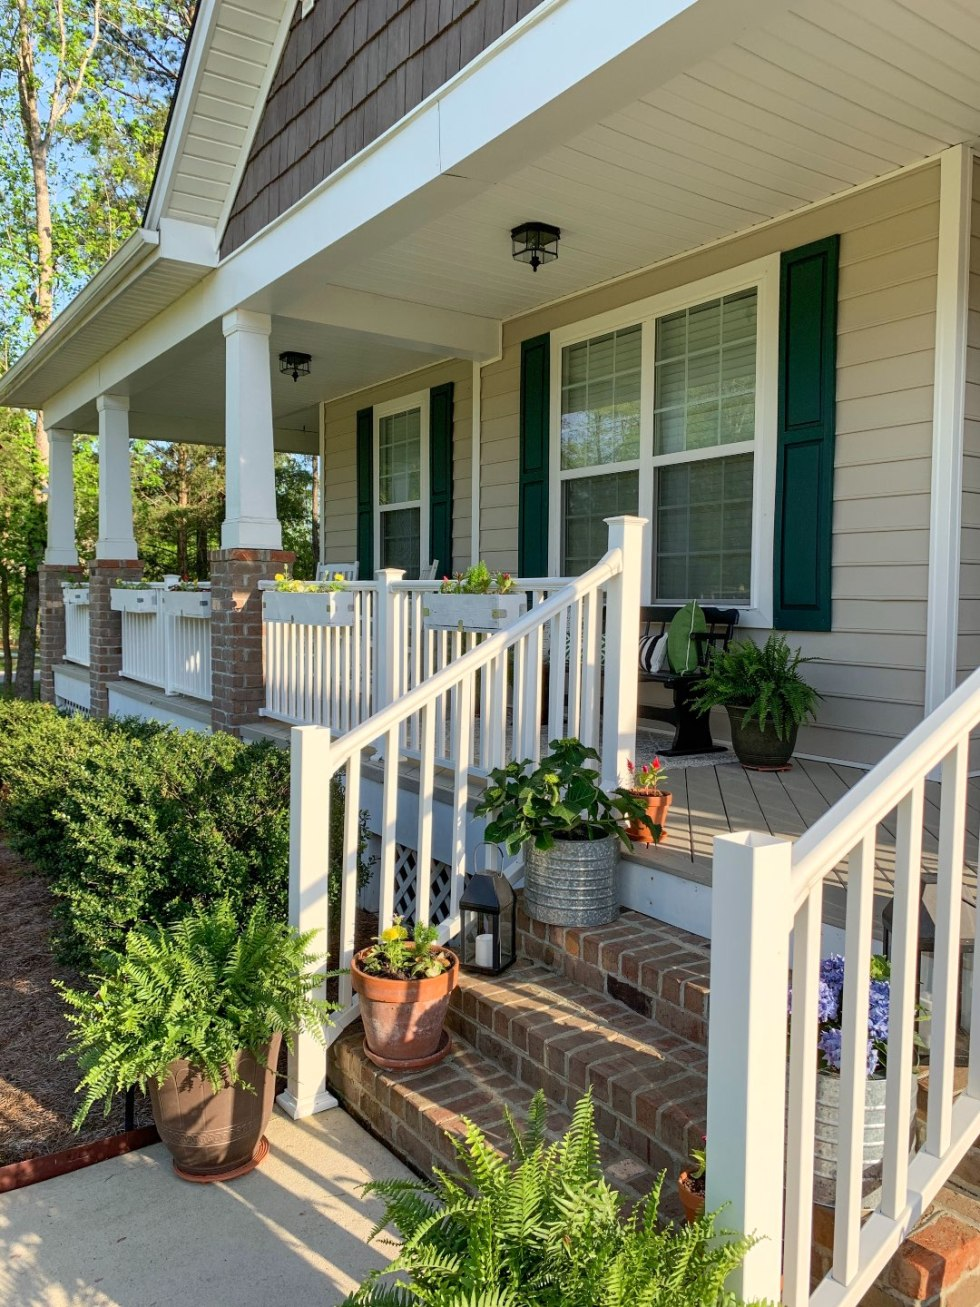 How to Update Your Front Porch Decor for the Season - I'm Fixin' To - @mbg0112  | Front Porch Decor for Spring featured by top US lifestyle blog, I'm Fixin' To: image of plants being planted